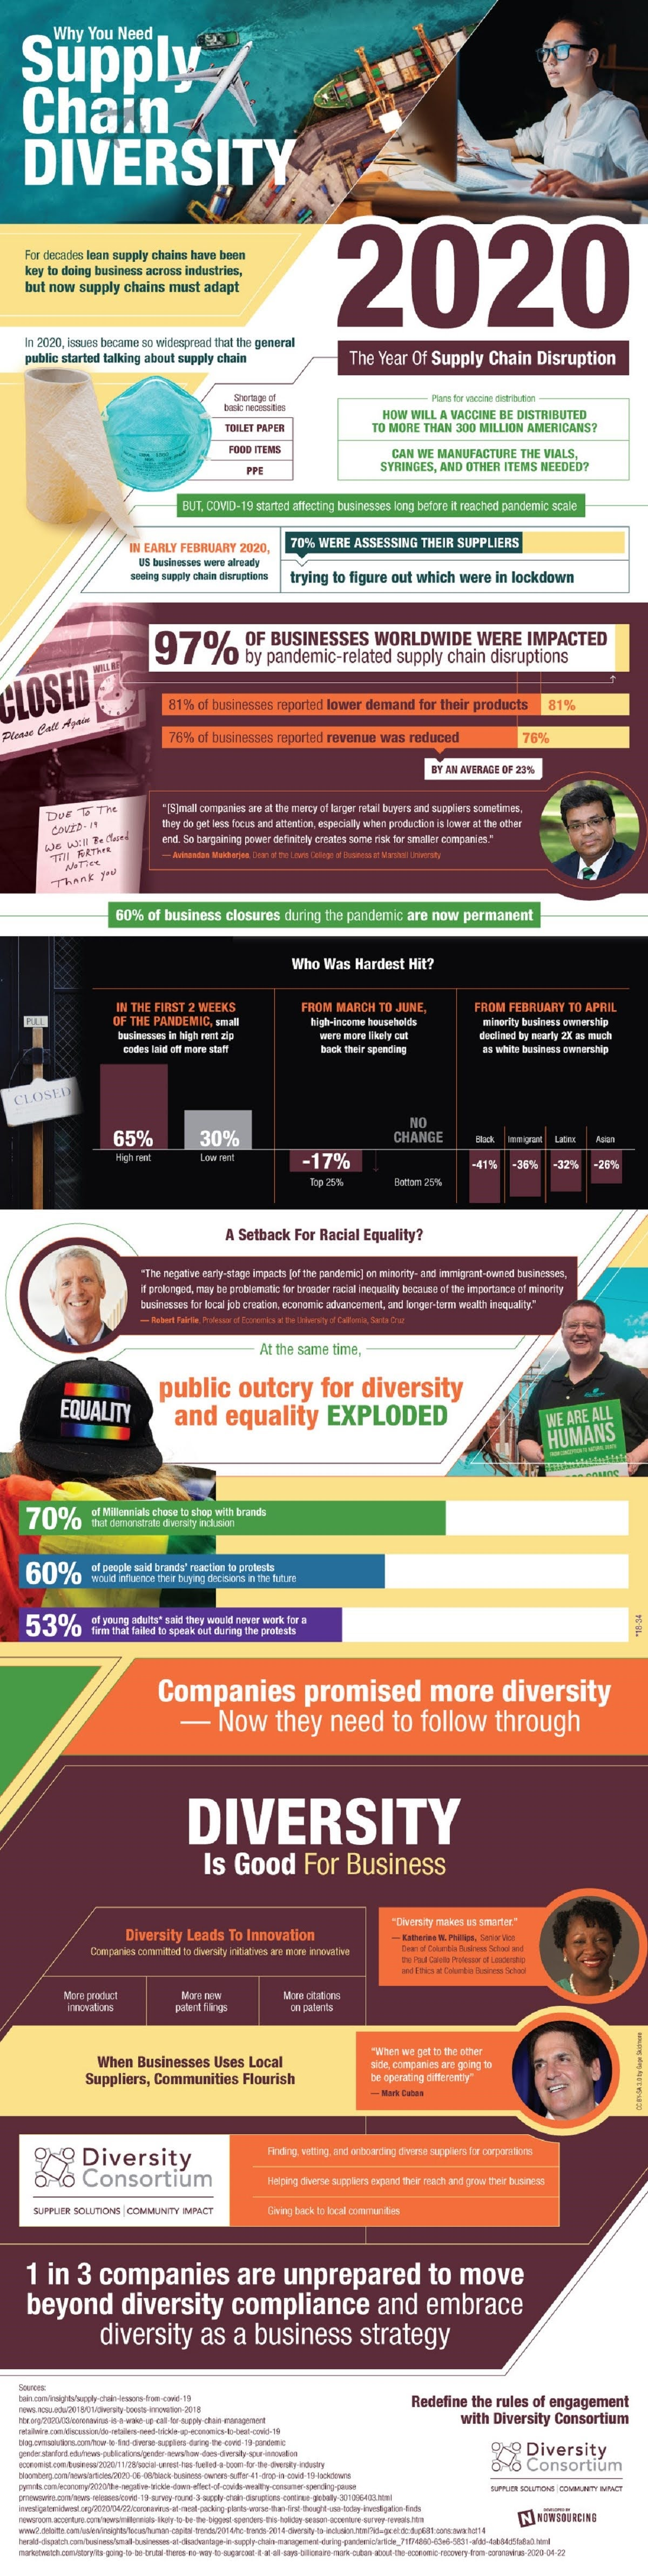 Why You Need Supply Chain Diversity #infographic